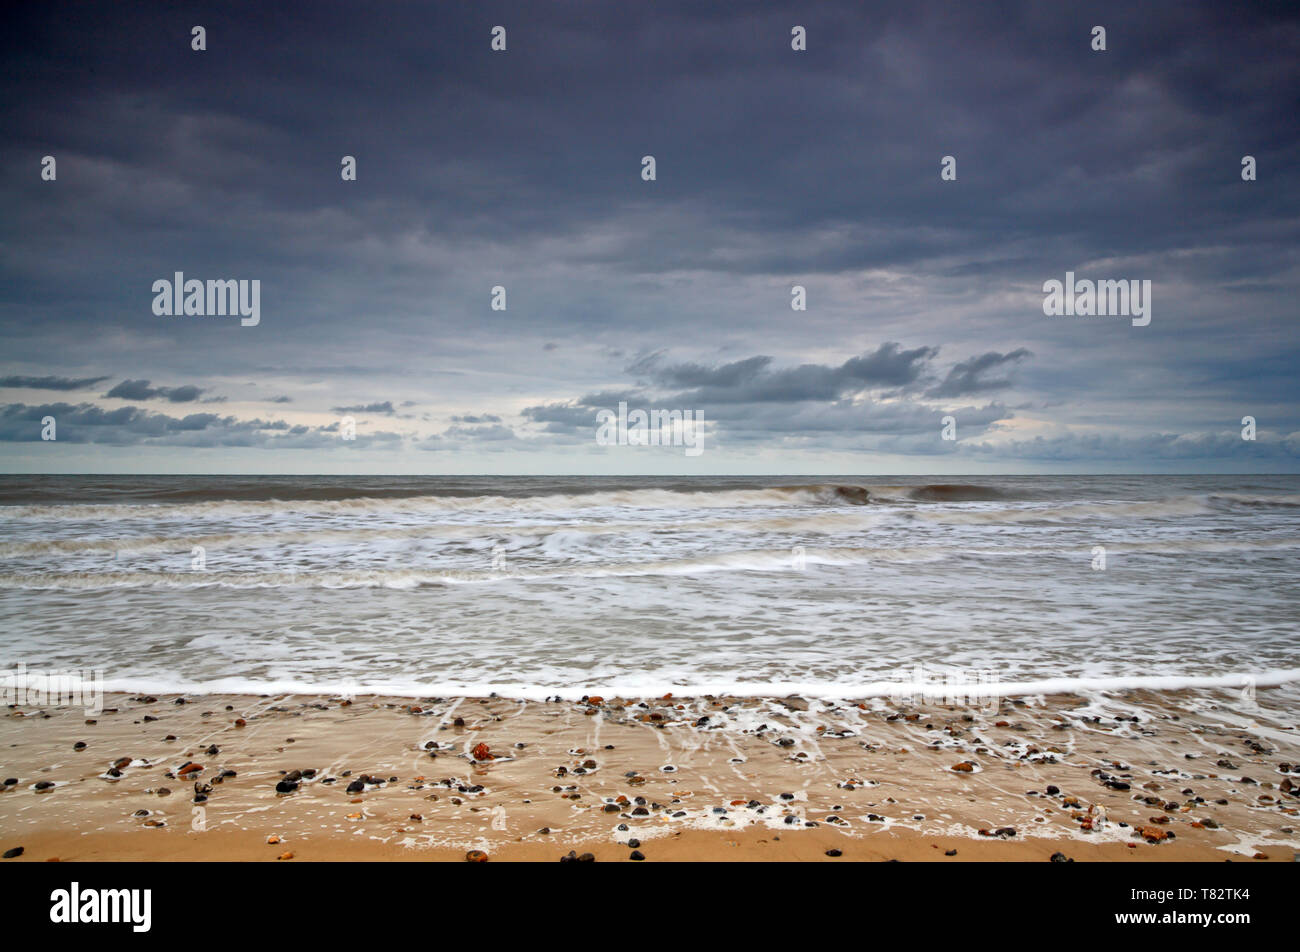 A view of a clearing showery sky over the sea from the beach at Happisburgh, Norfolk, England, United Kingdom, Europe. Stock Photo